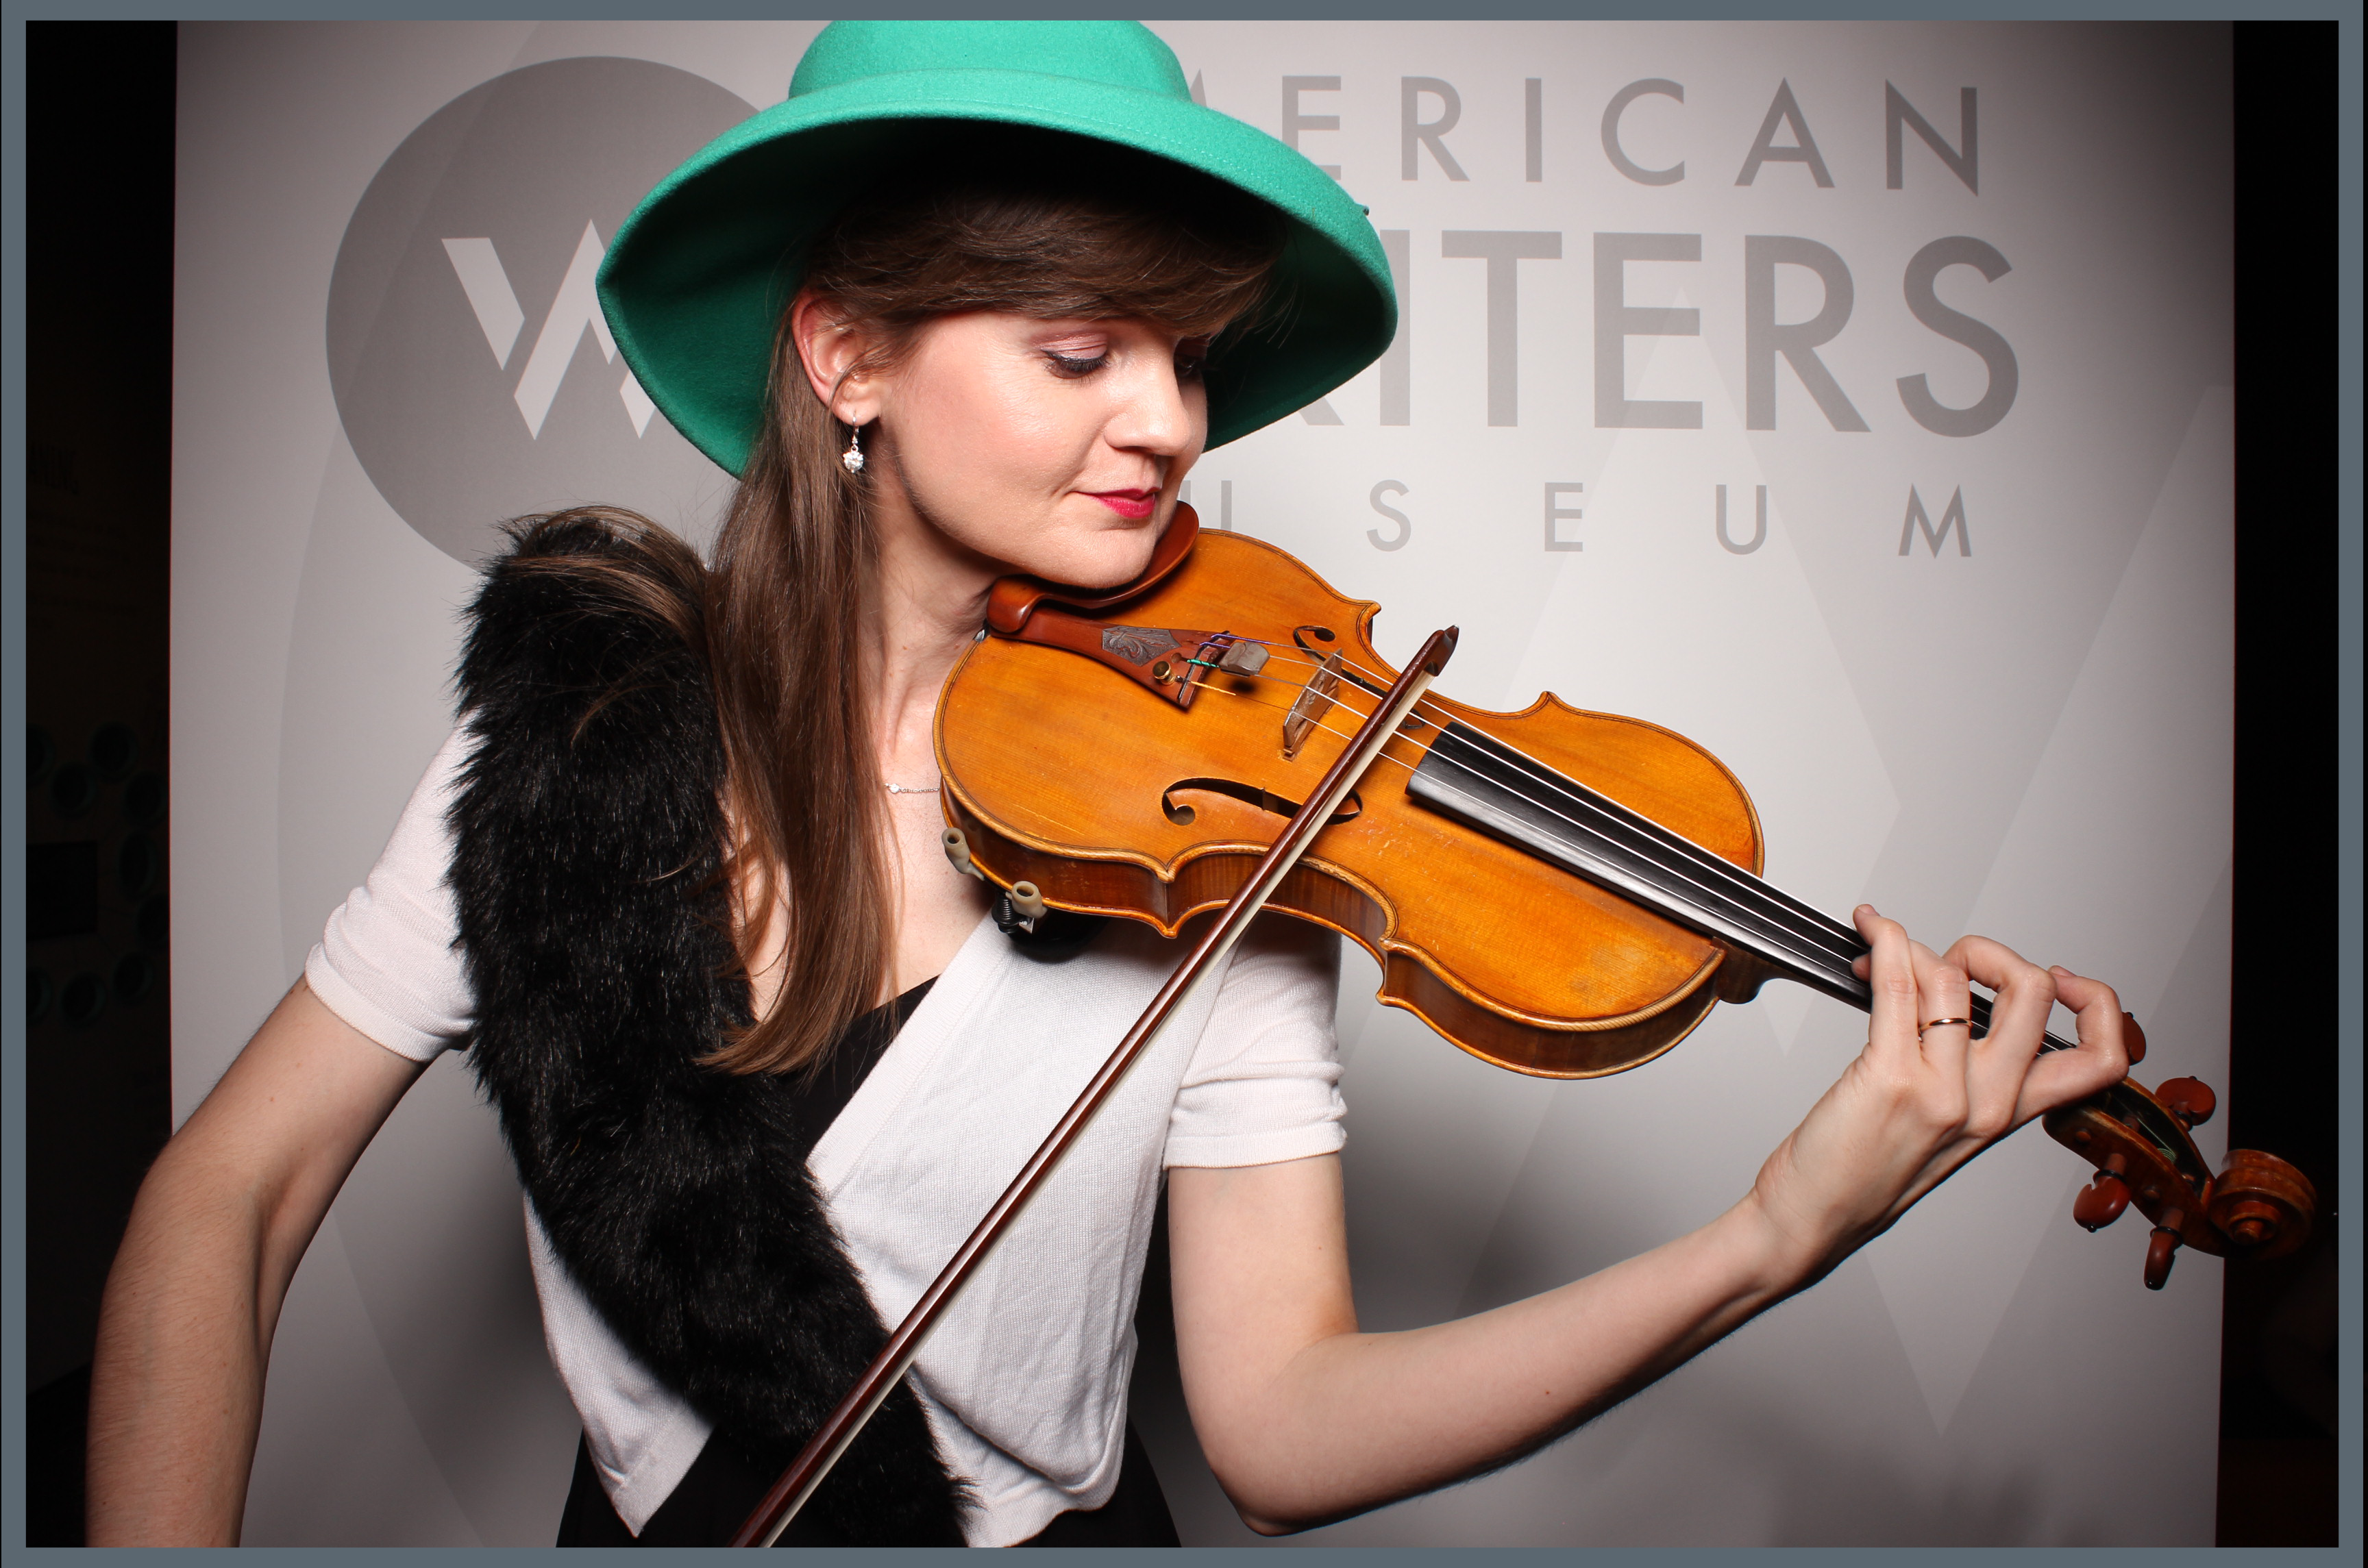 Portrait of a violin player at the American Writers Museum